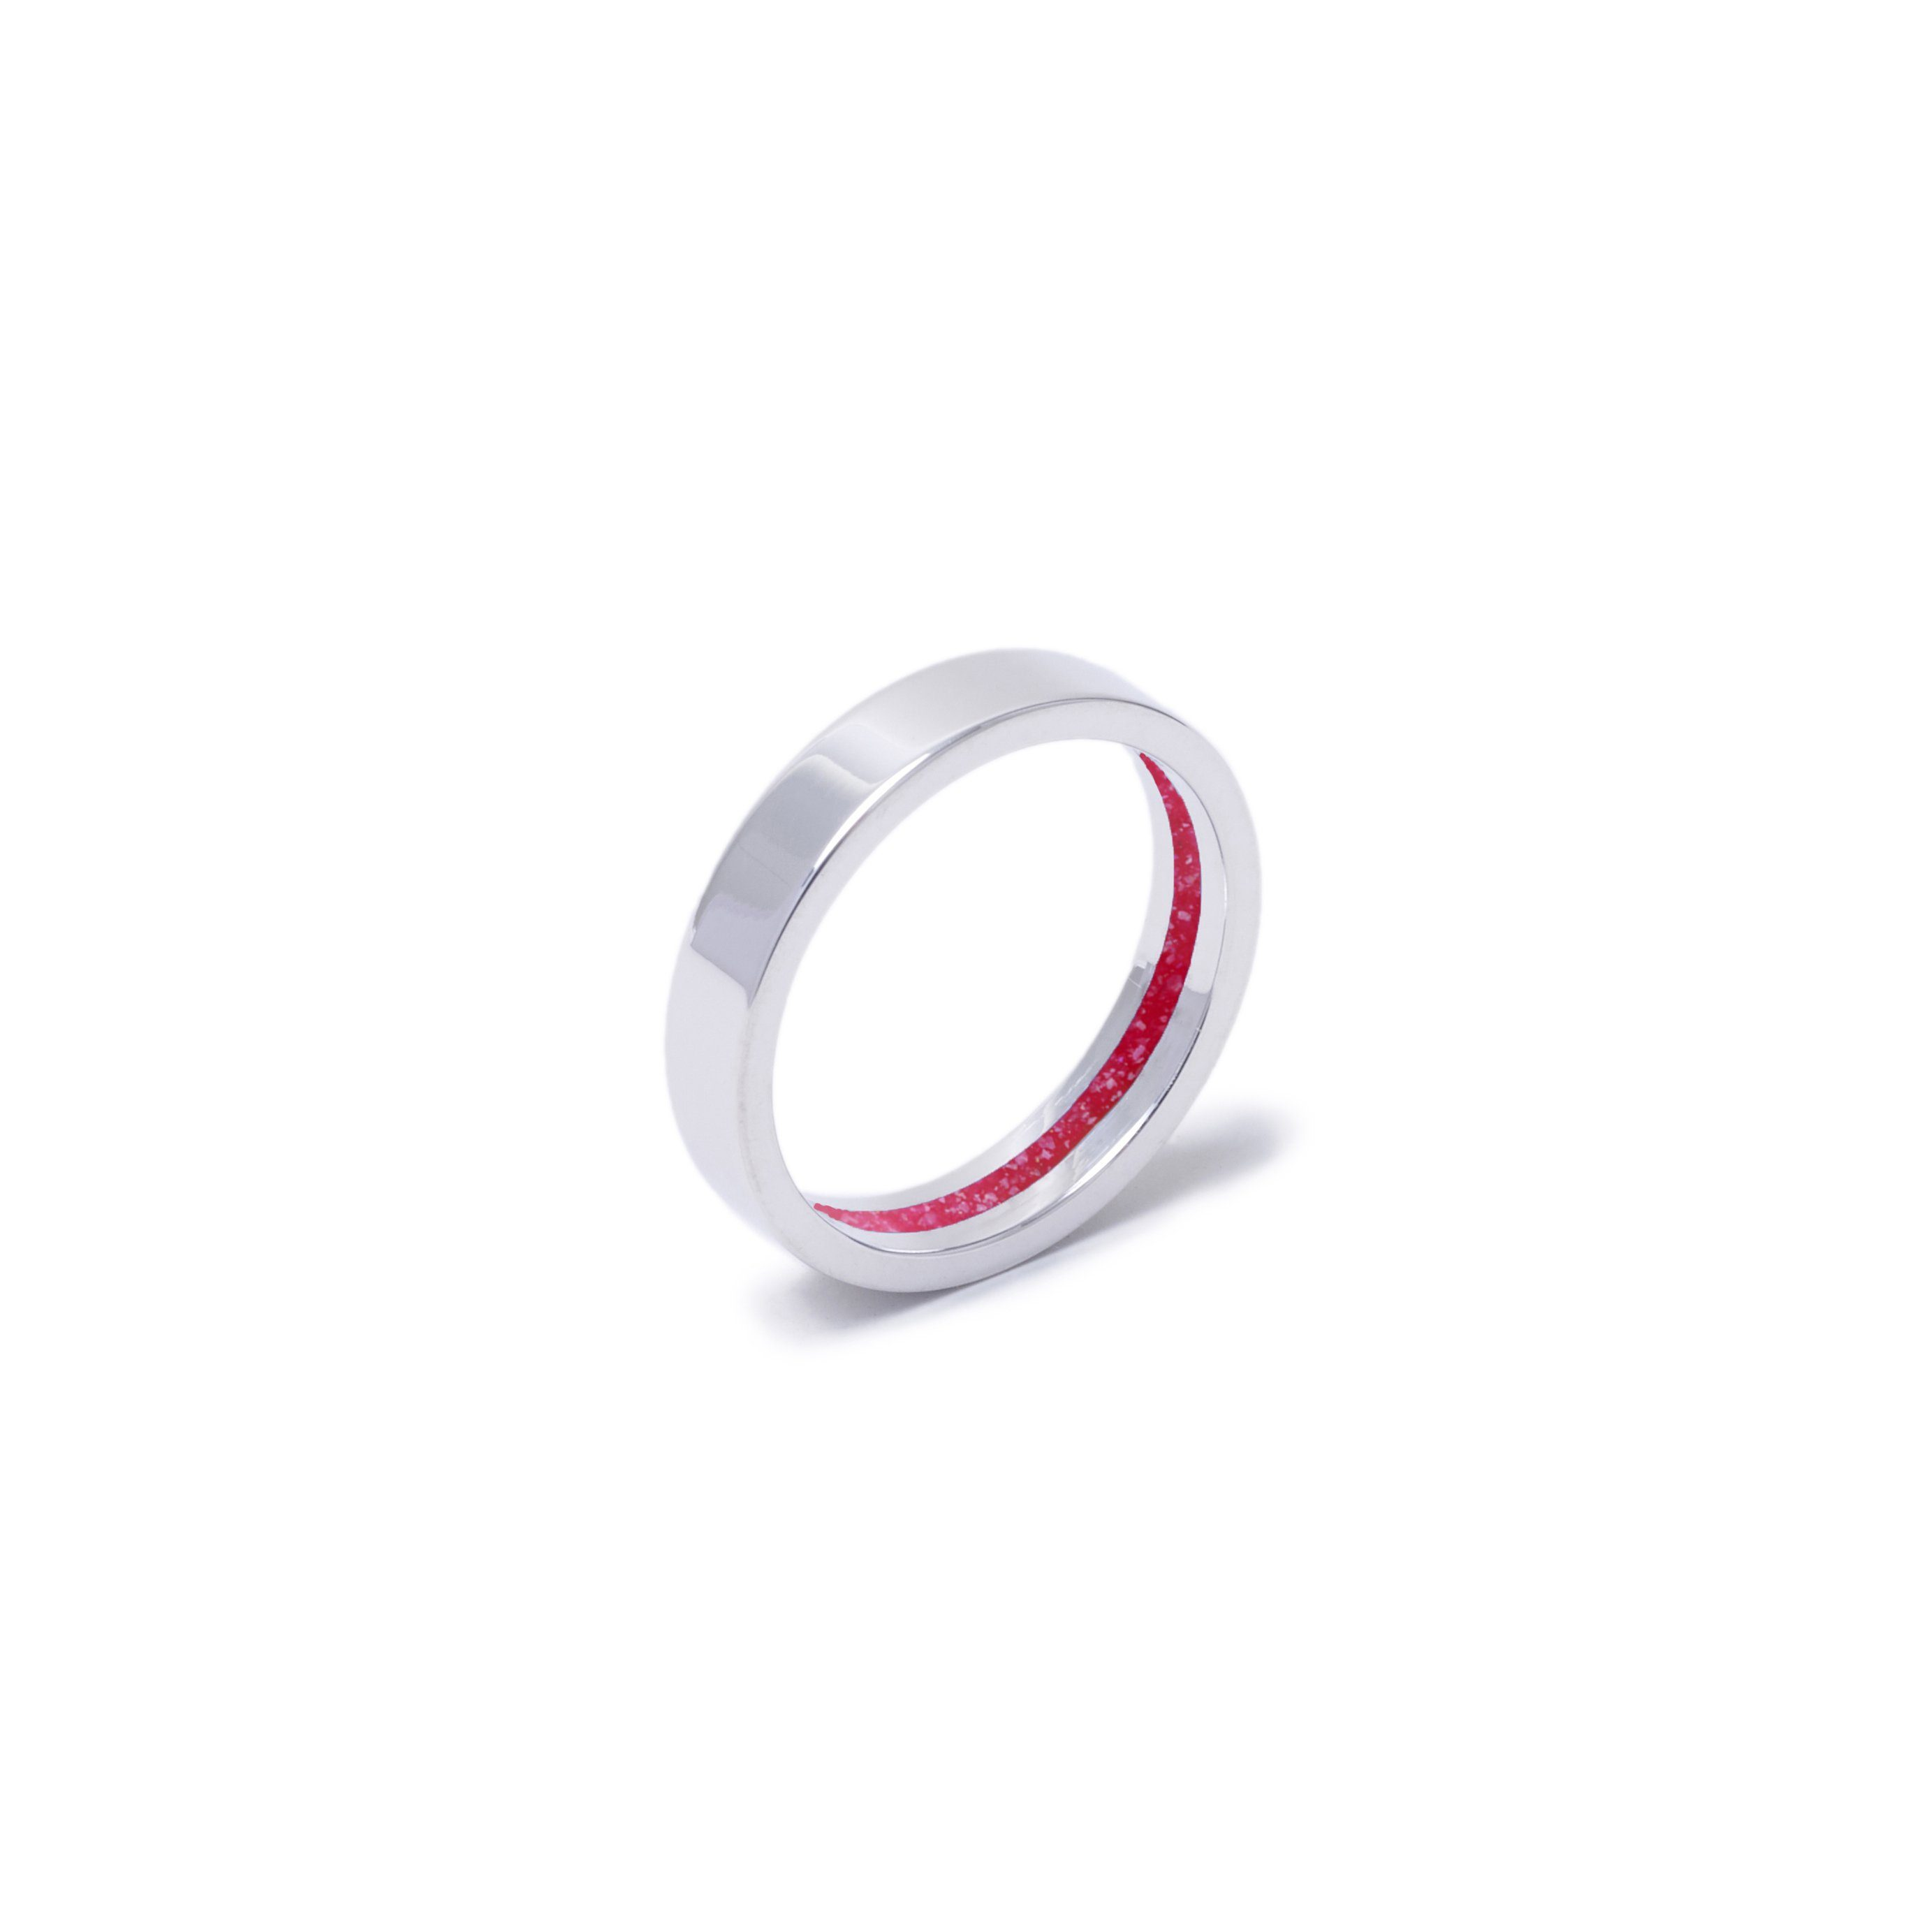 Everence Ring, 10k White Gold everence.life 4mm Scarlet